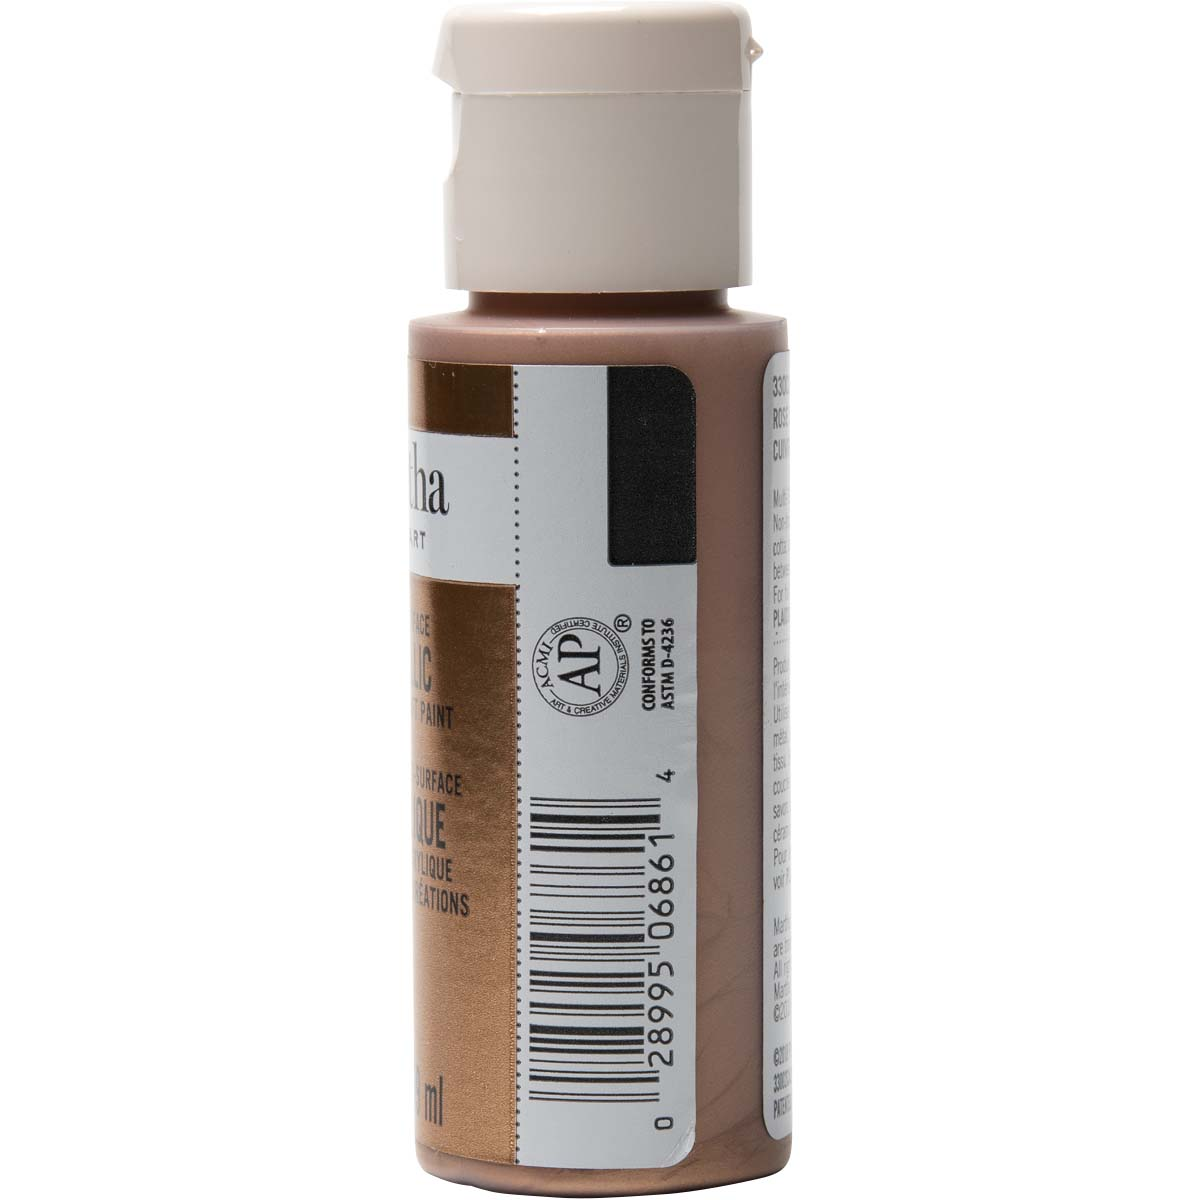 Martha Stewart ® Multi-Surface Metallic Acrylic Craft Paint - Rose Copper, 2 oz. - 33002CA